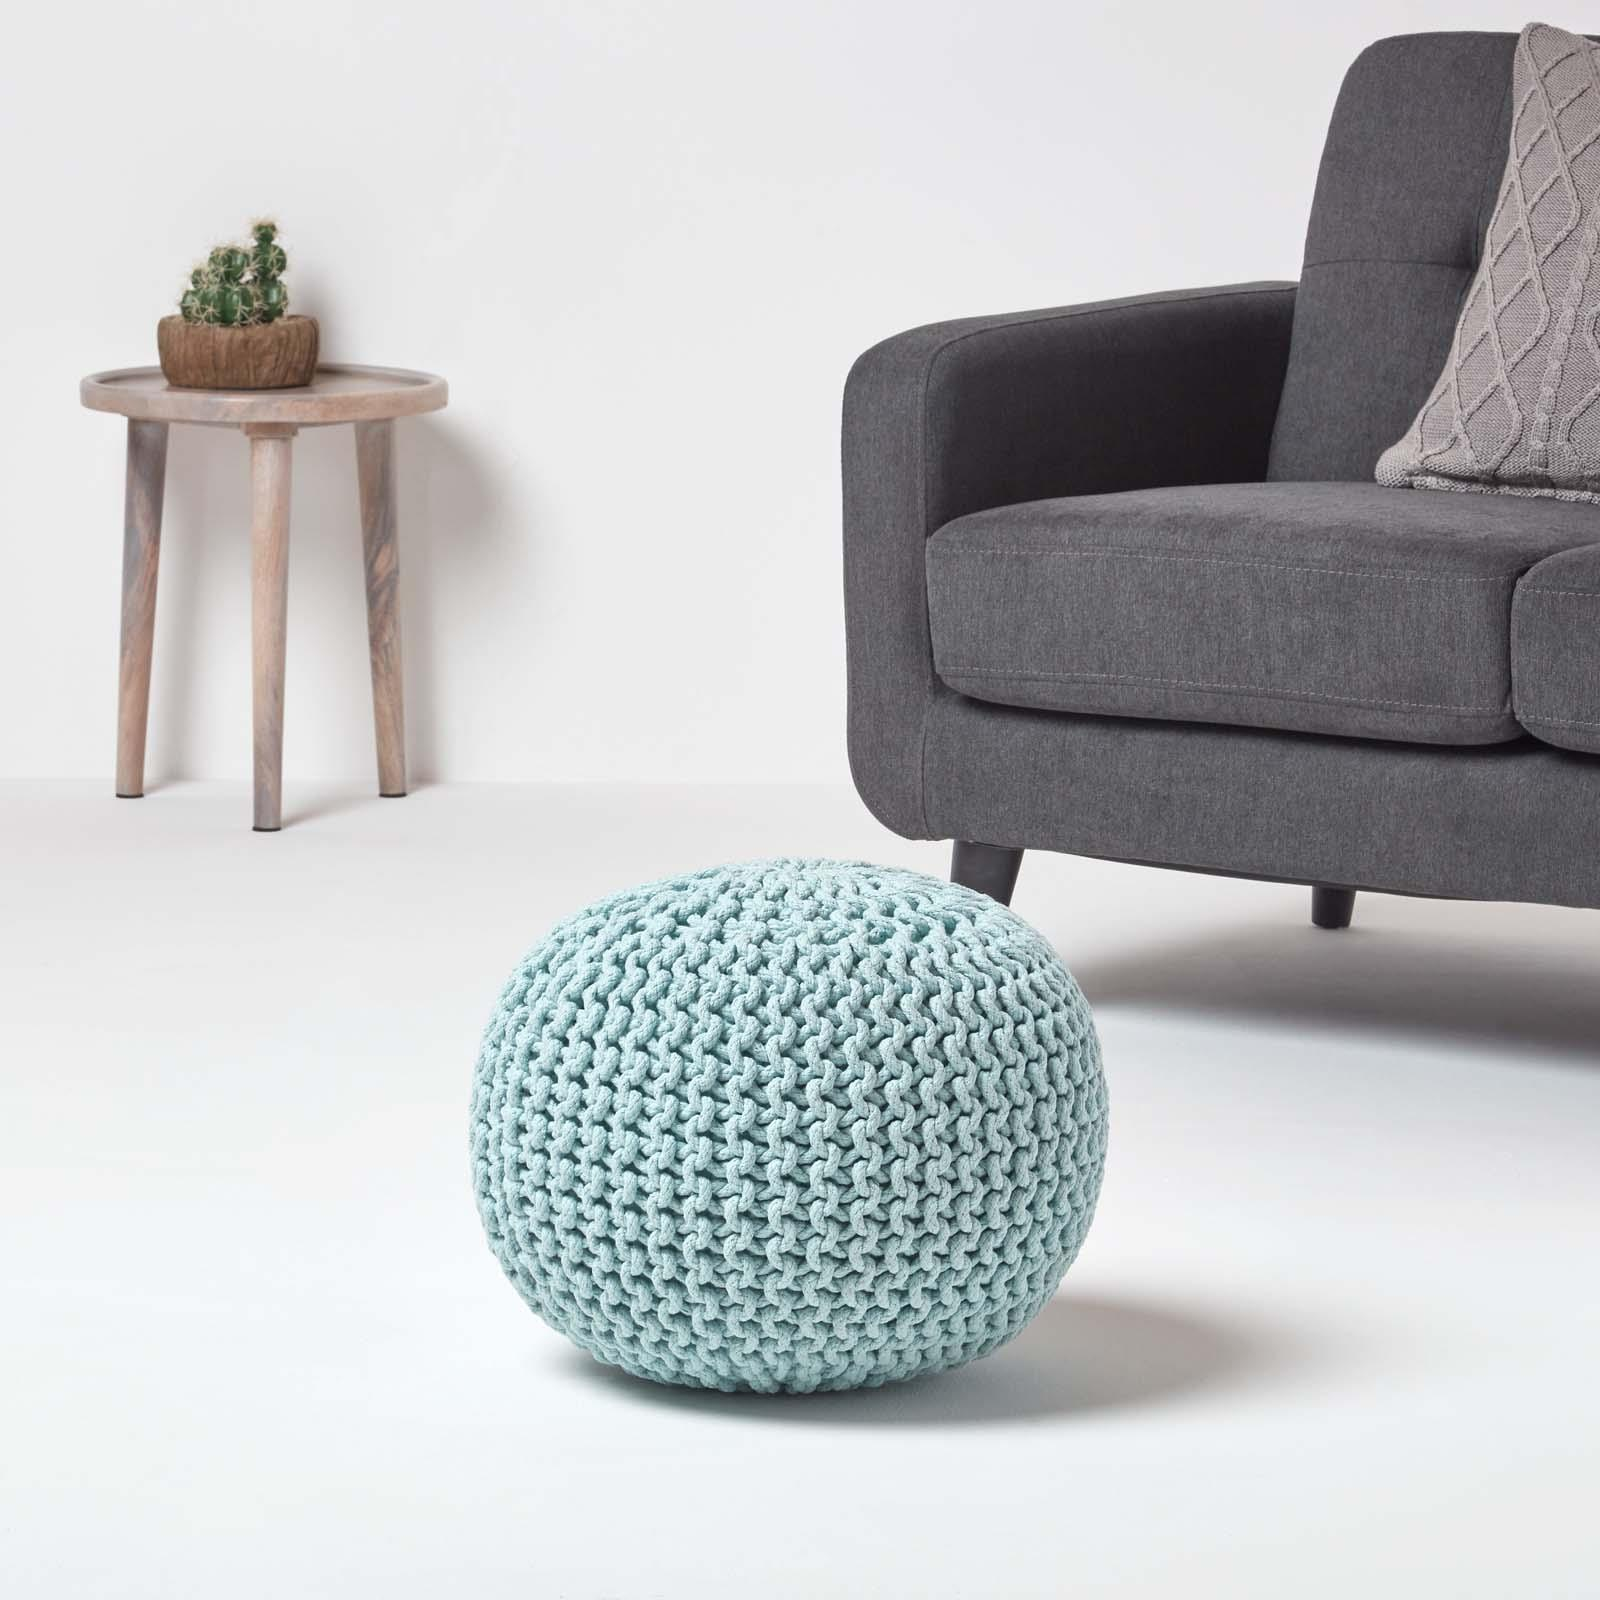 Hand-Knitted-100-Cotton-Pouffes-Round-Sphere-Or-Cube-Square-Chunky-Footstools thumbnail 129